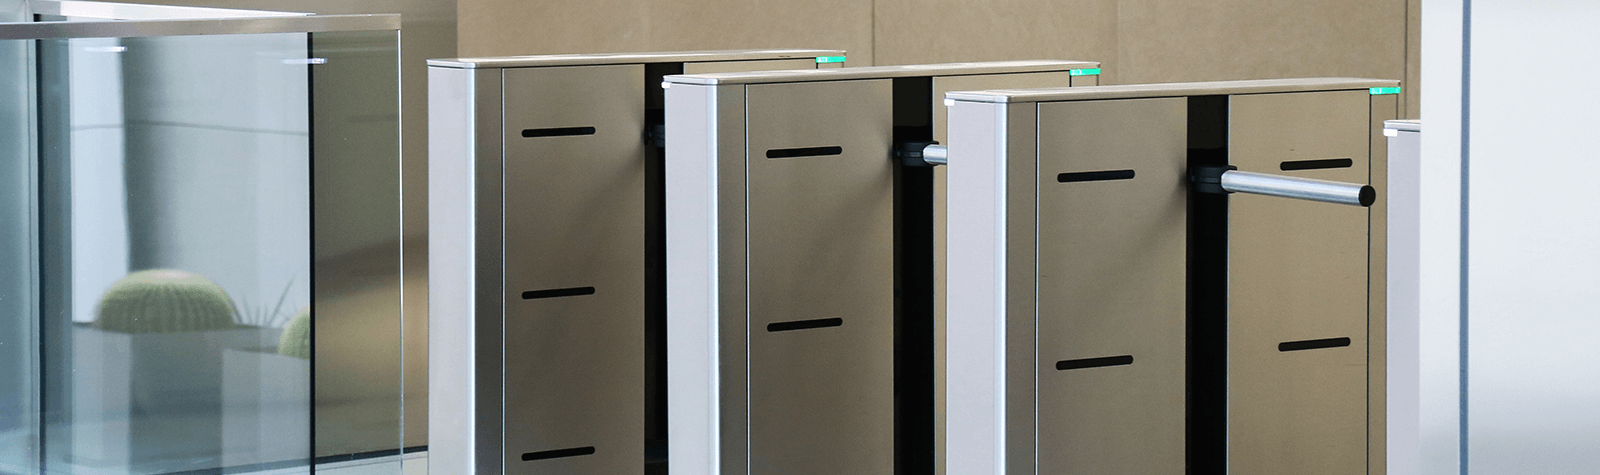 4 Considerations When Replacing Existing Turnstiles